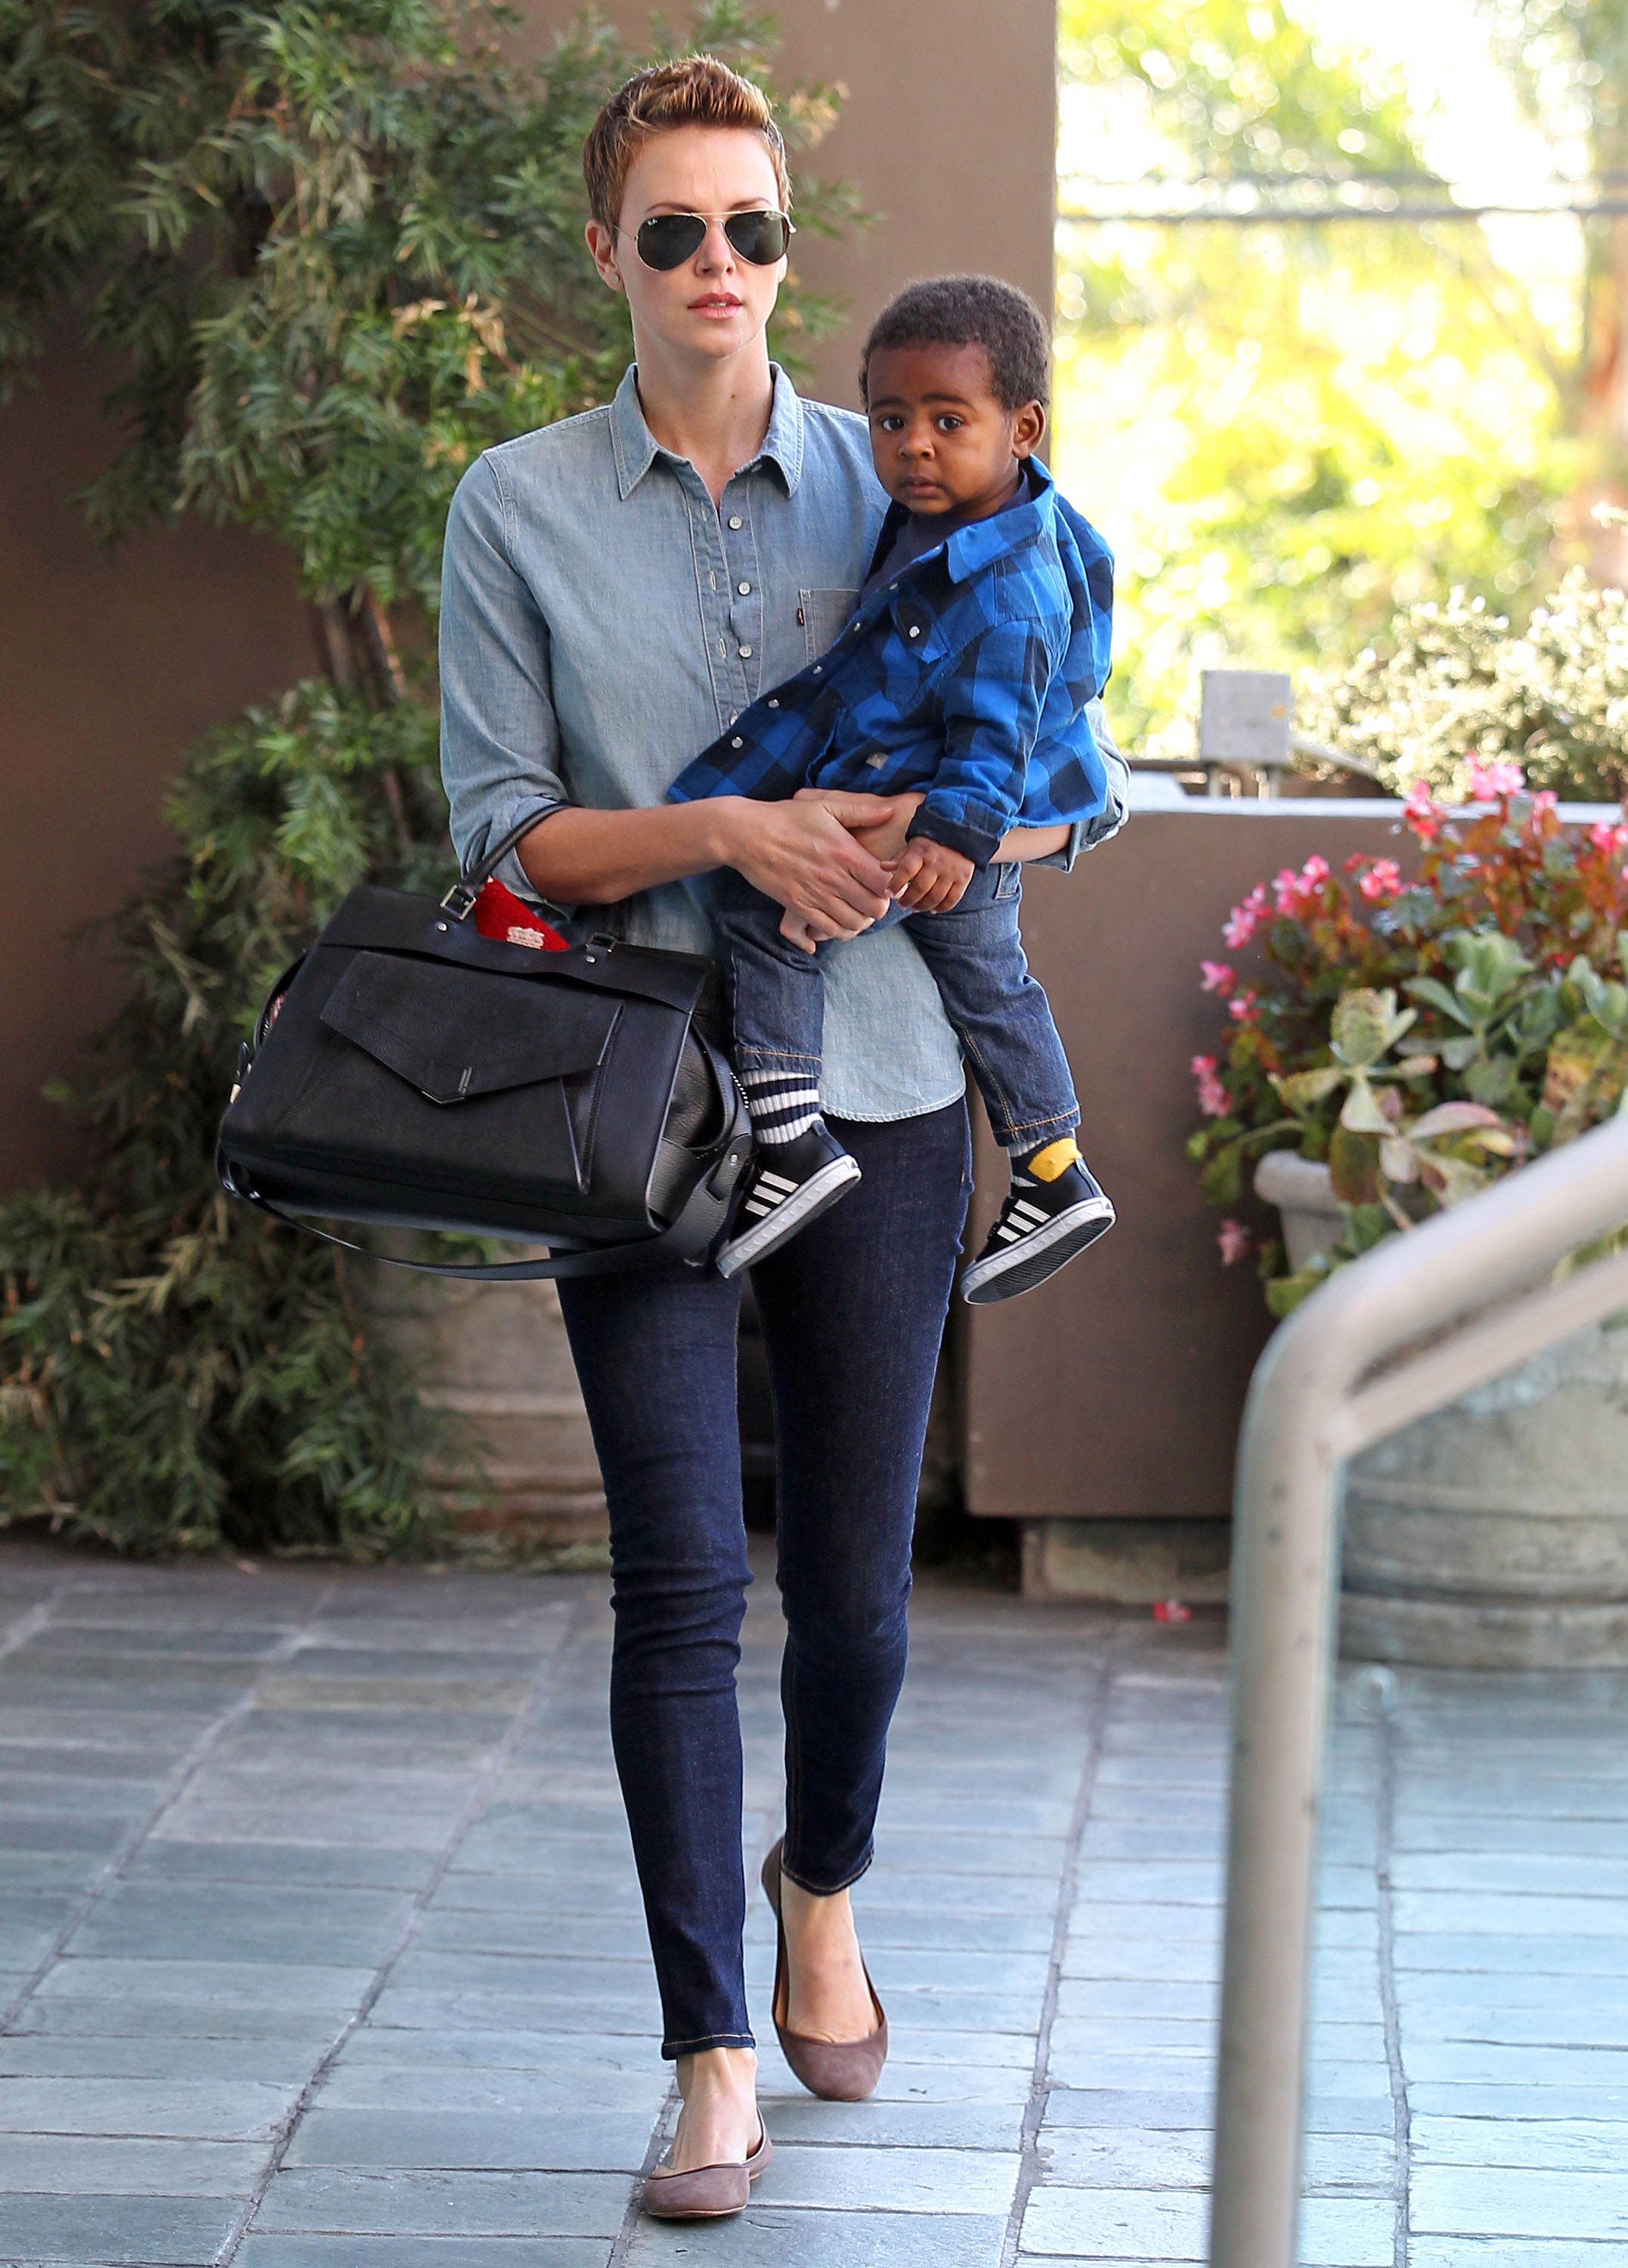 Charlize Theron took her son, Jackson, to a children's gym in LA.